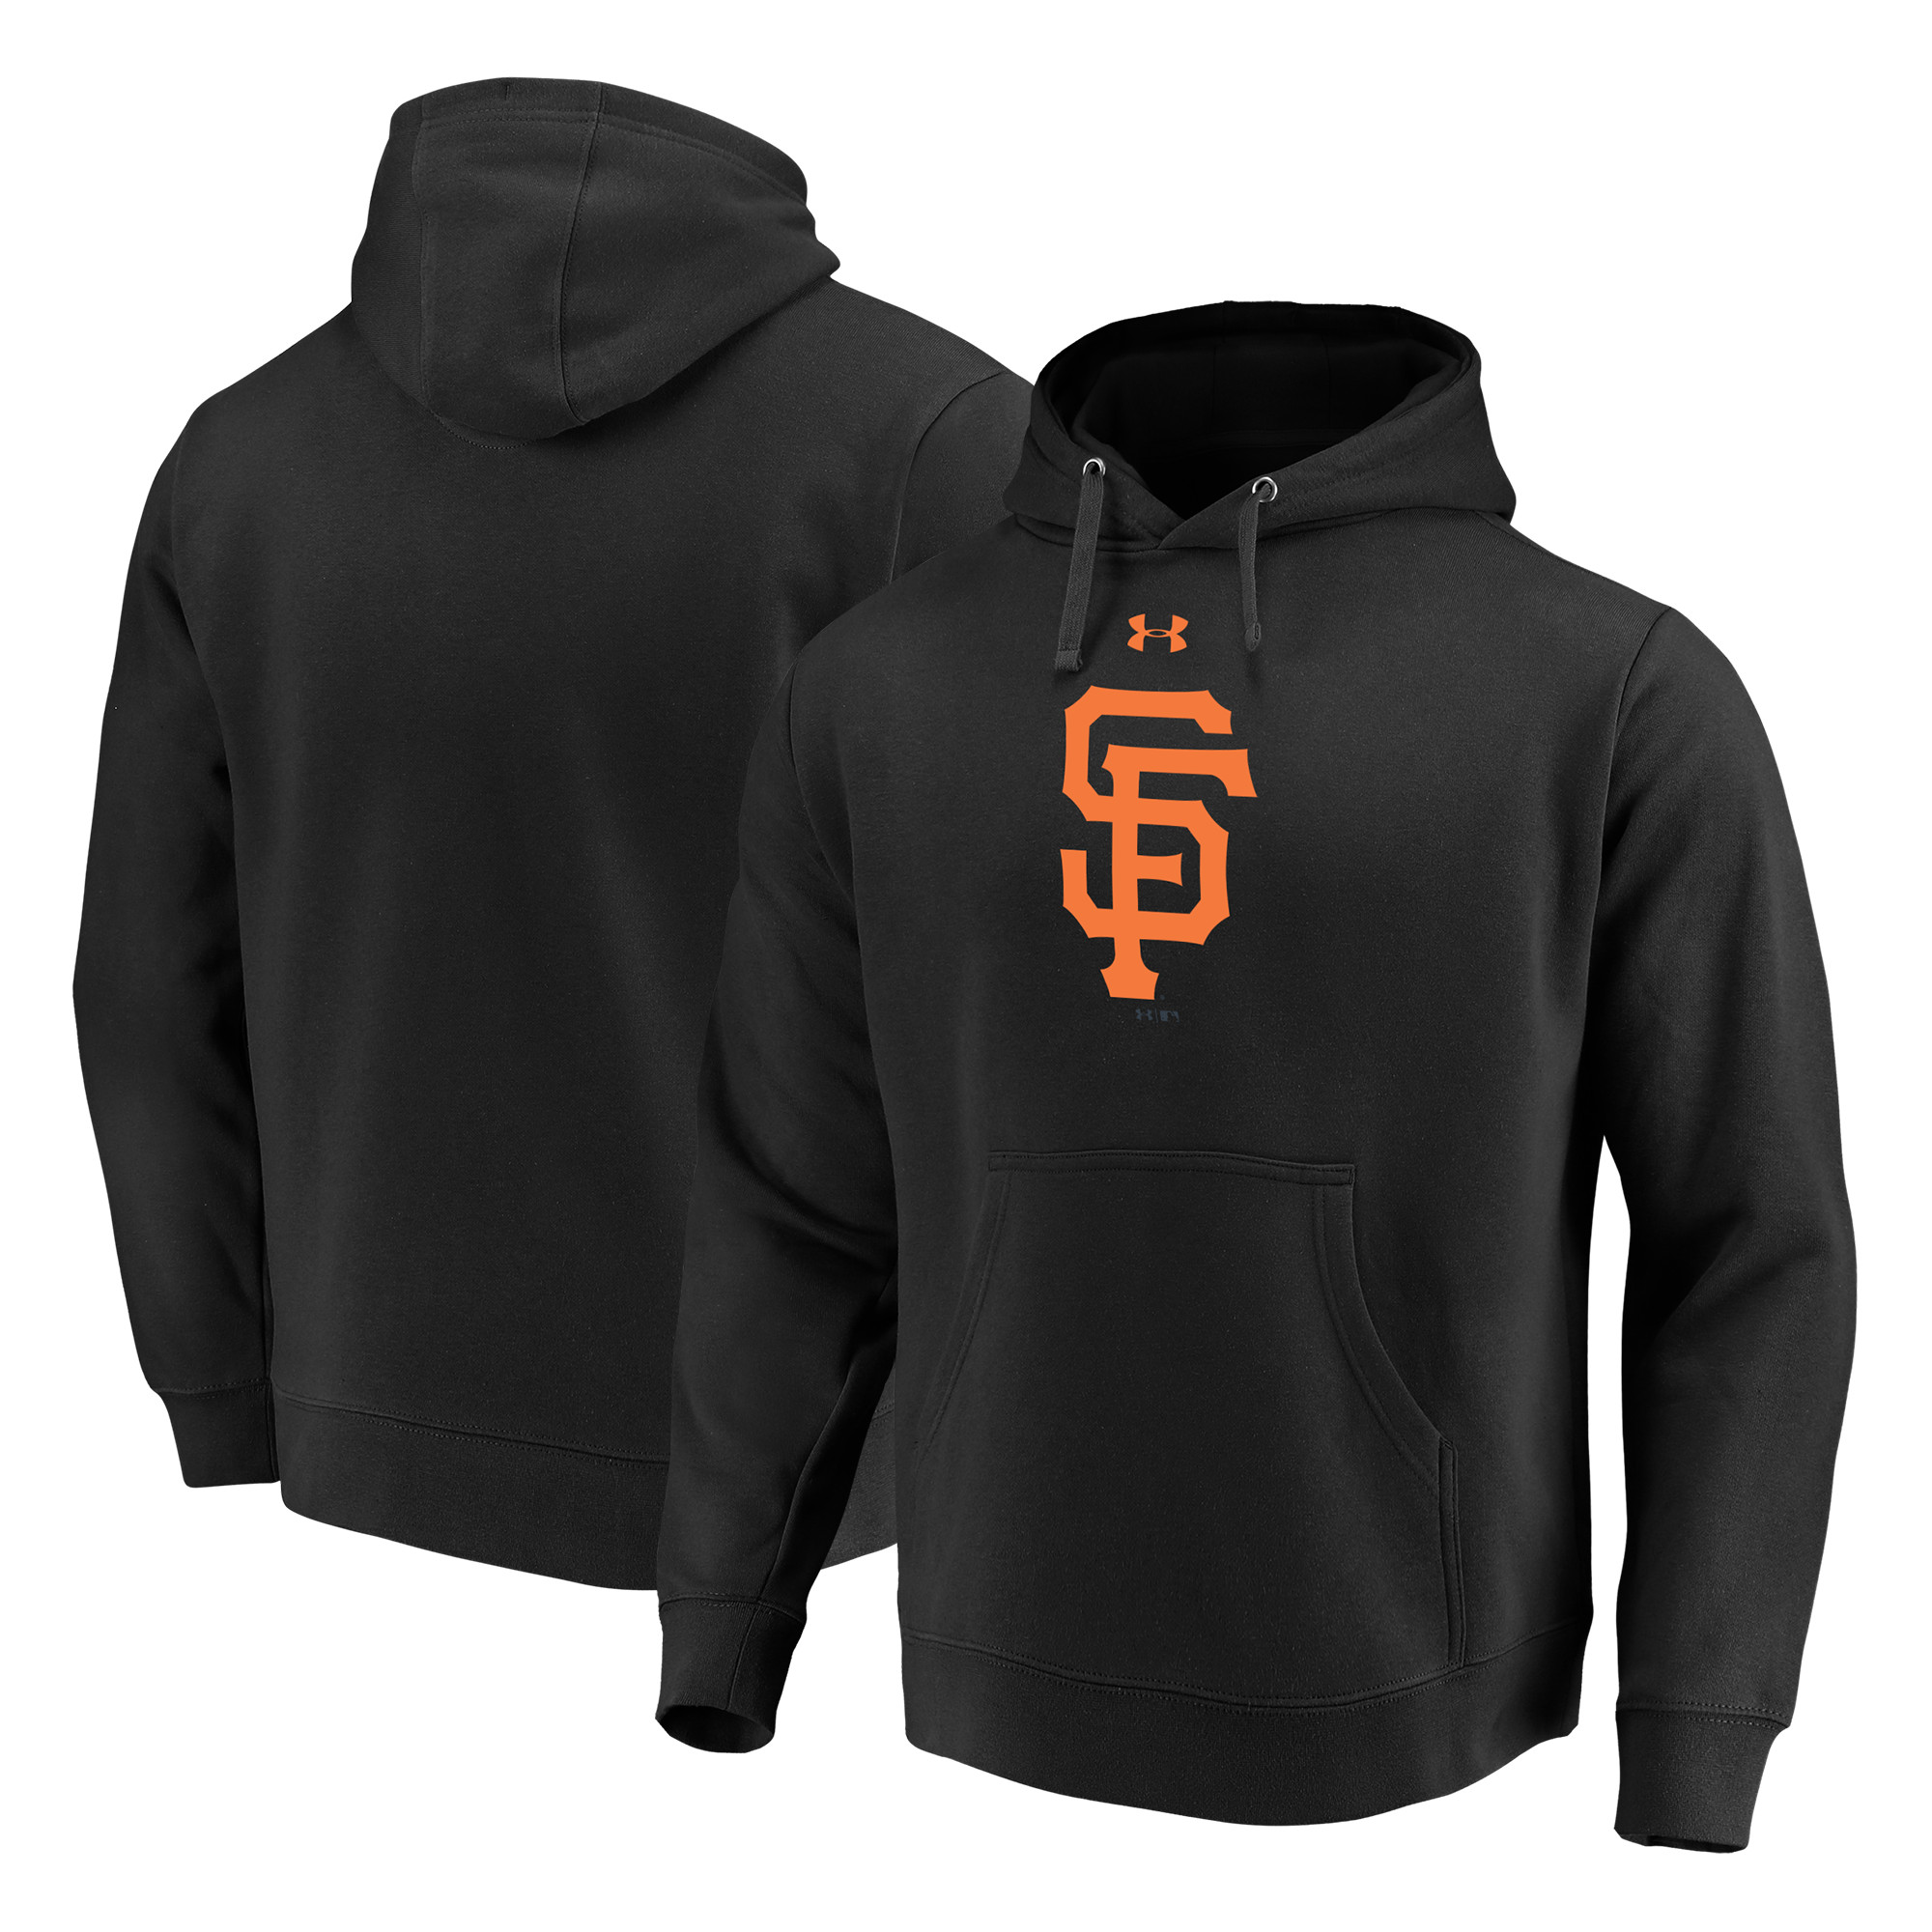 San Francisco Giants Under Armour Commitment Team Mark Performance Pullover Hoodie - Black